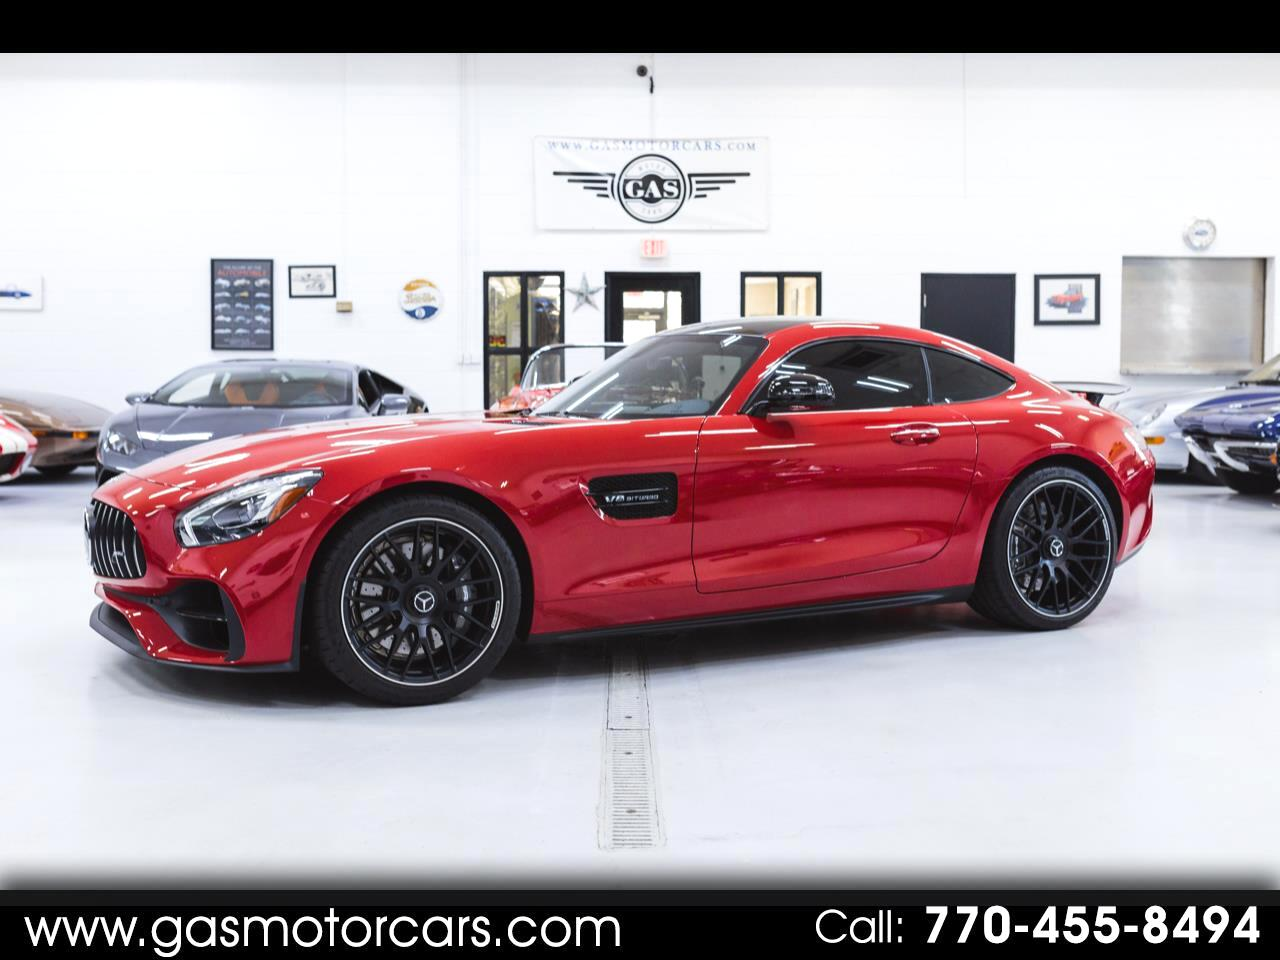 Mercedes-Benz AMG GT Base 2019